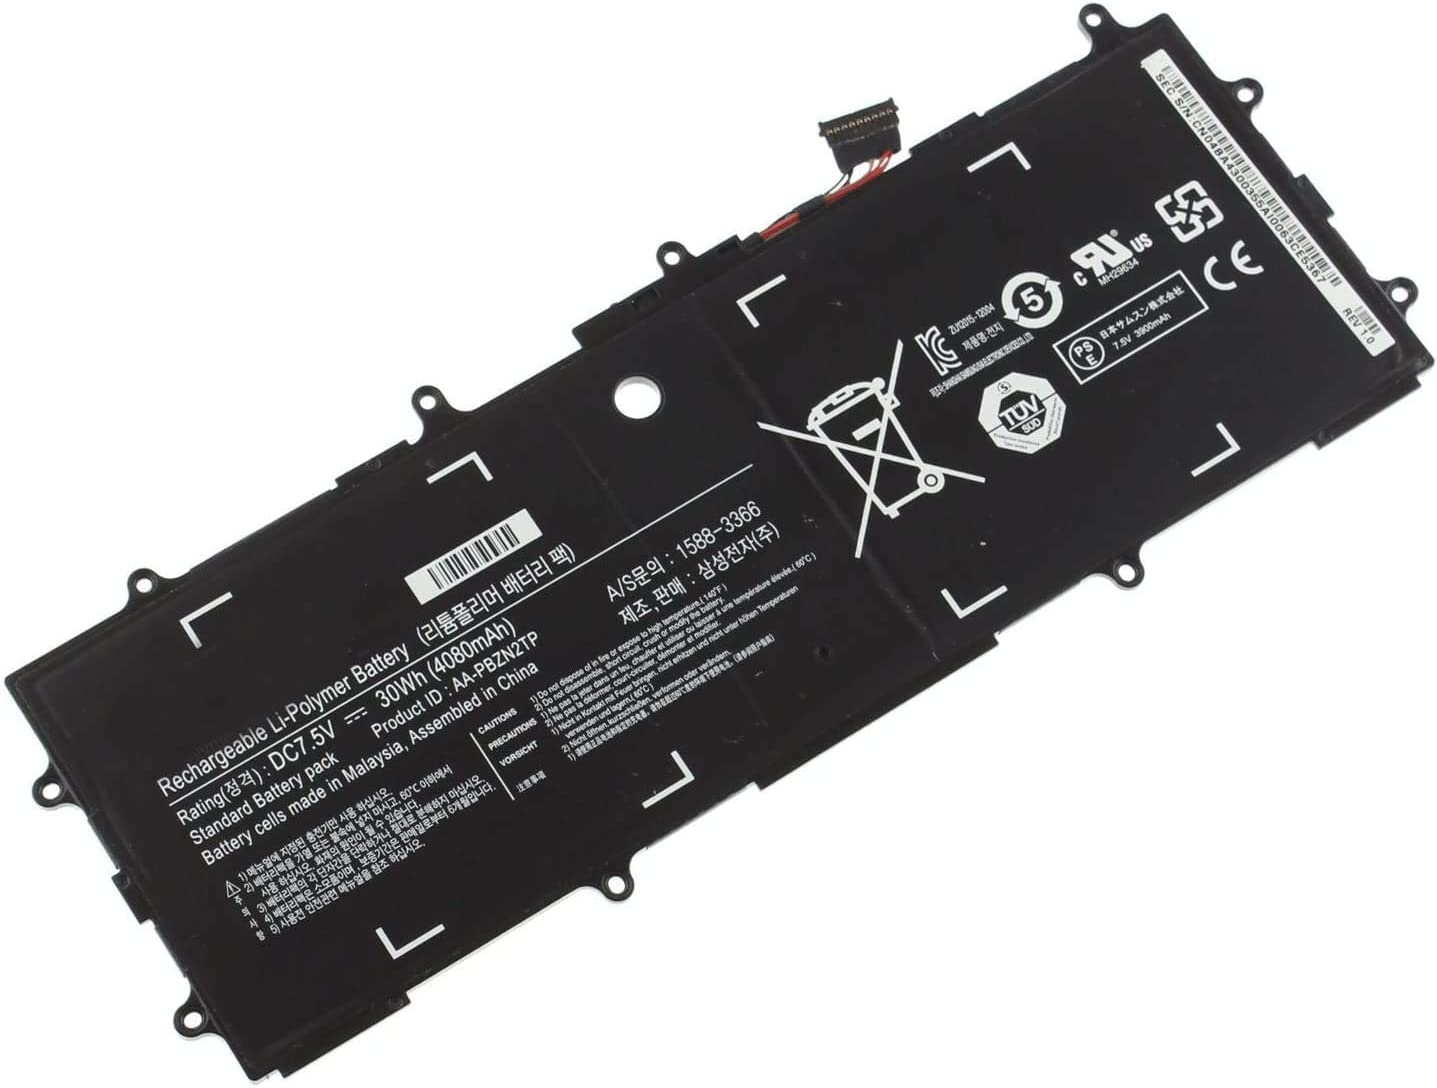 Daka Zeta III Plus Replacement Battery by UPS Battery Center